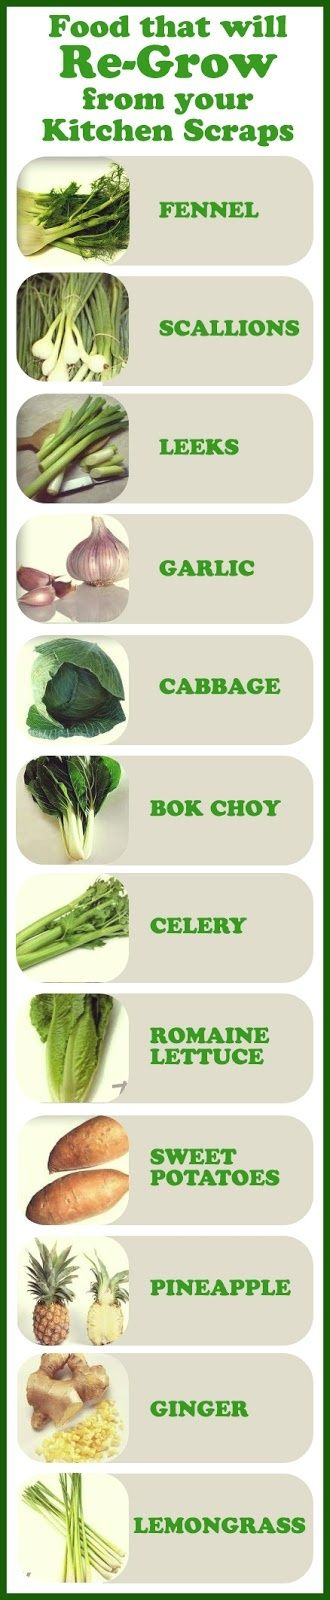 Permaculture Ideas: Foods that will Re-Grow from your Kitchen Scraps - My-House-My-Home